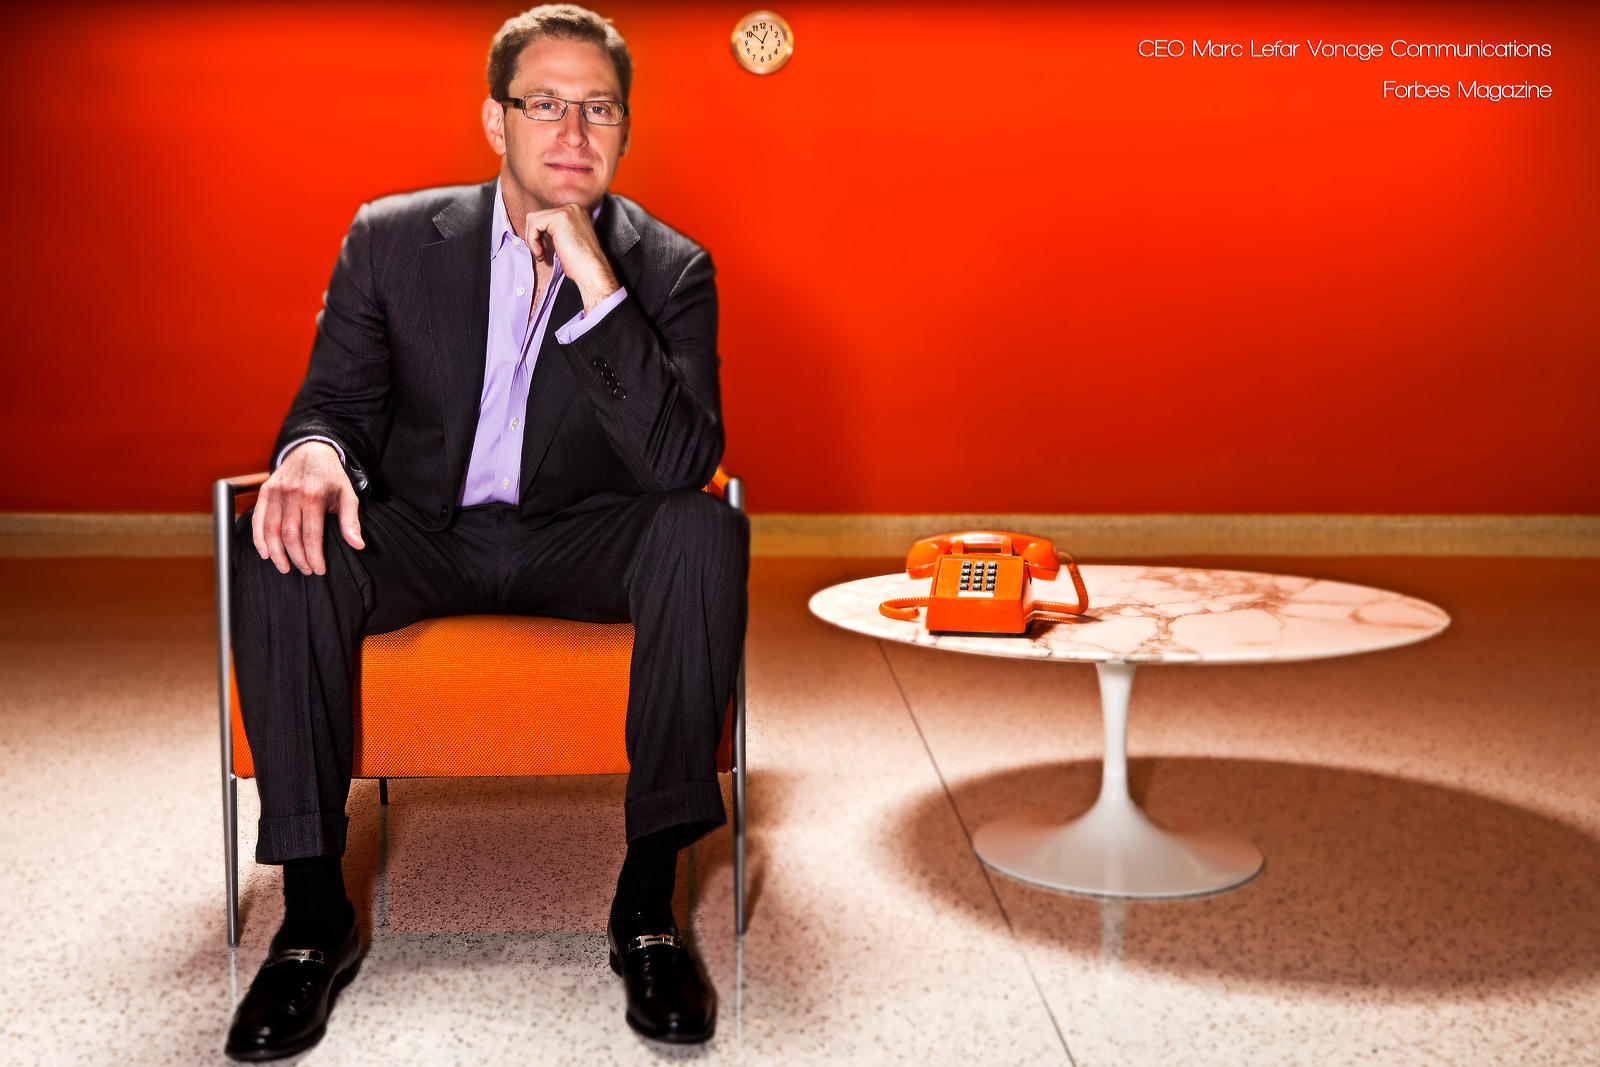 Vonage CEO Marc Lefar for Forbes Magazine - corporate portrait : Corporate Portraits : NY - Portrait Photographer Video, Architectural, Corporate Editorial Location Photography